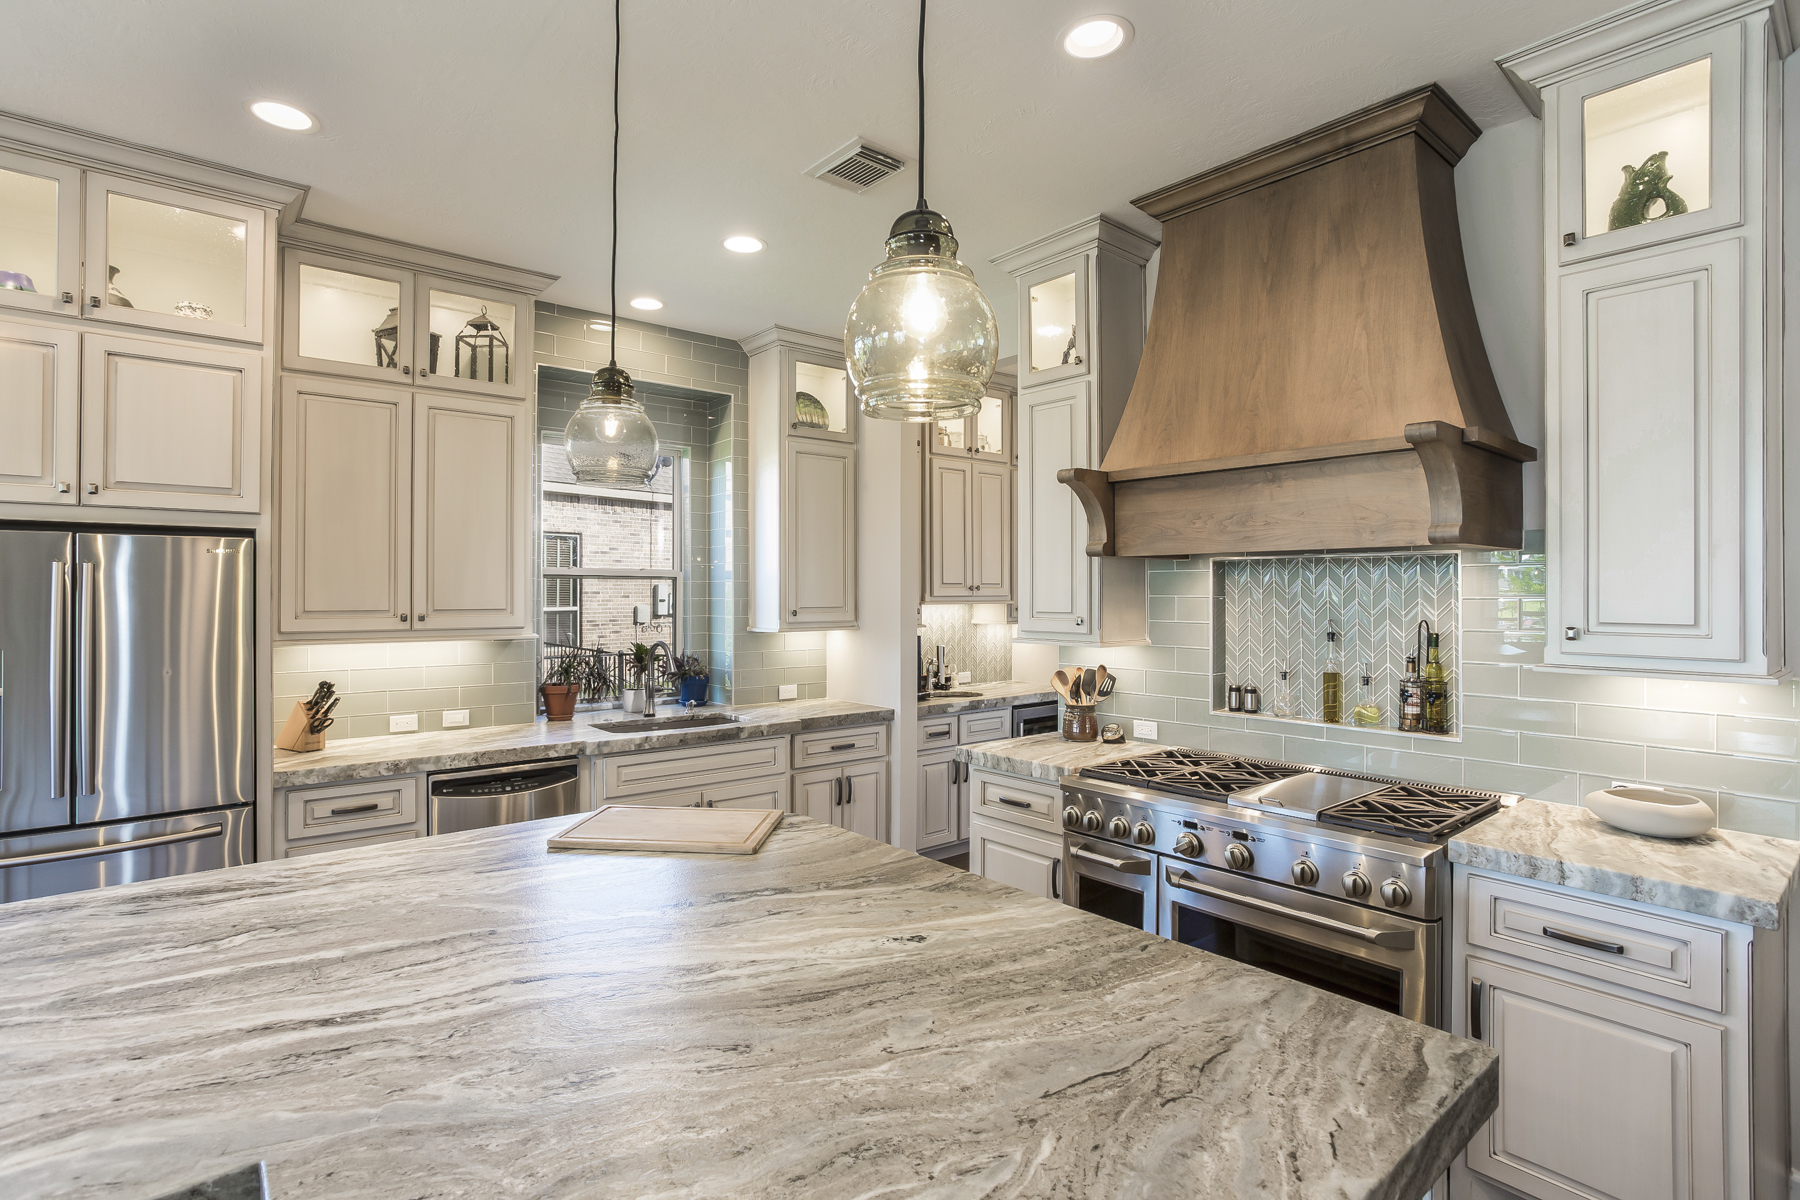 Home Renovations Morning Star Builders